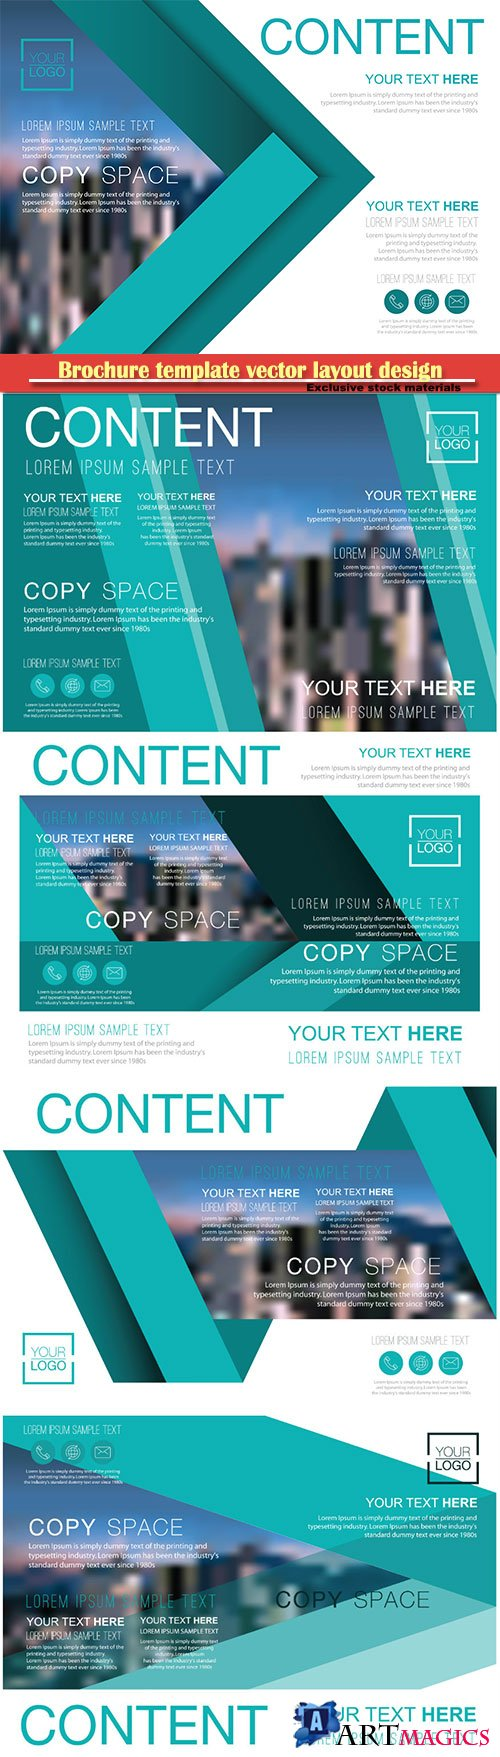 Brochure template vector layout design, corporate business annual report, magazine, flyer mockup # 163